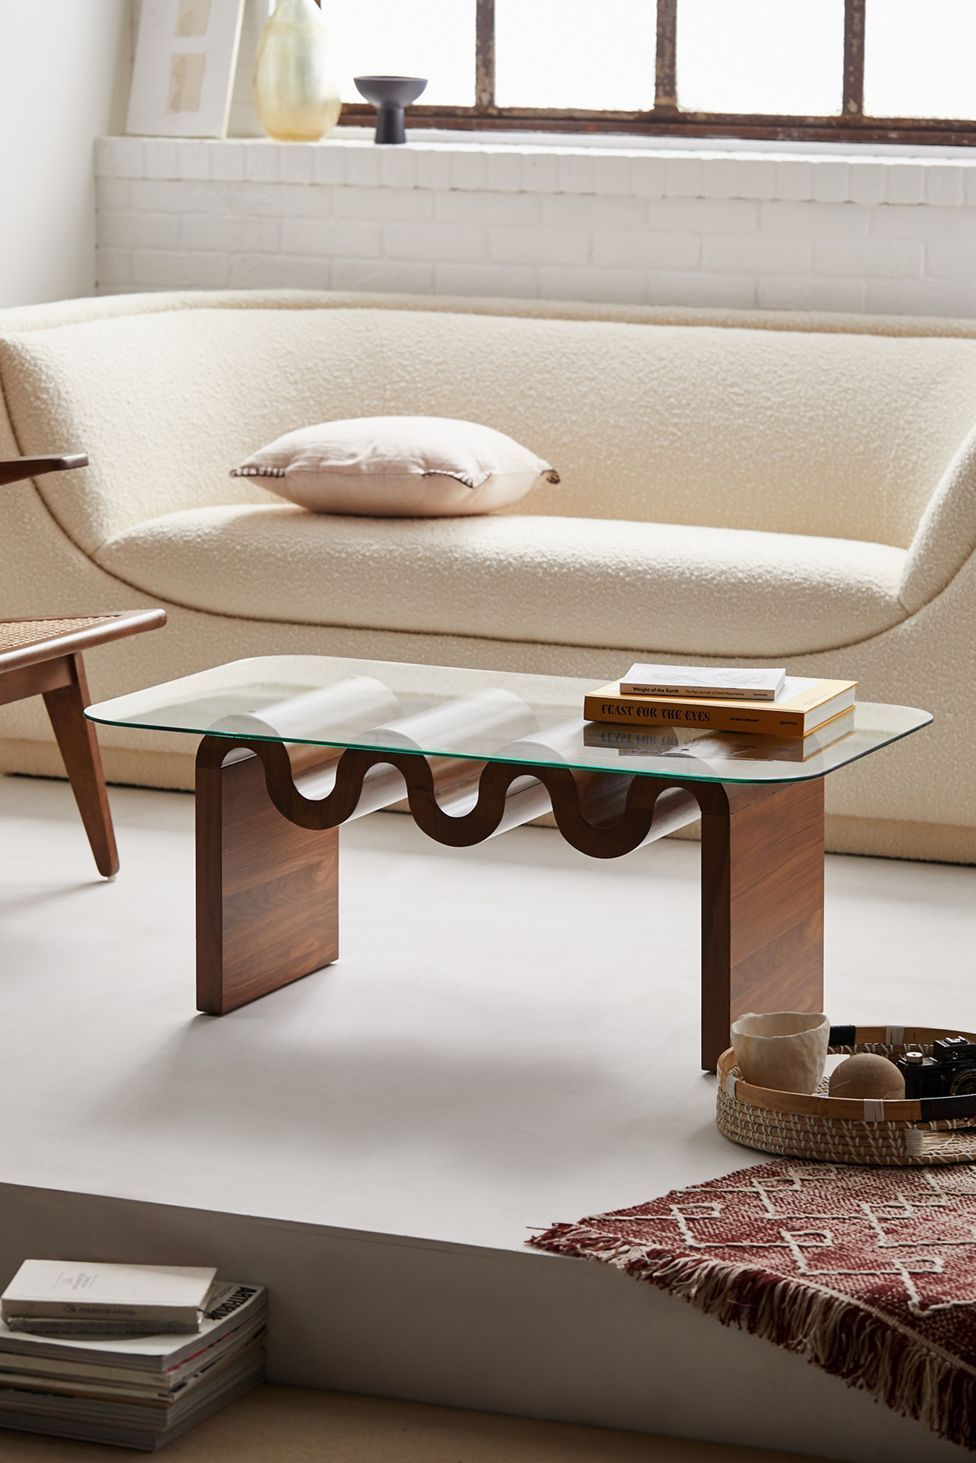 Aria Coffee Table In 2021 Coffee Table Coffee Table Urban Outfitters Quirky Furniture [ 1463 x 976 Pixel ]